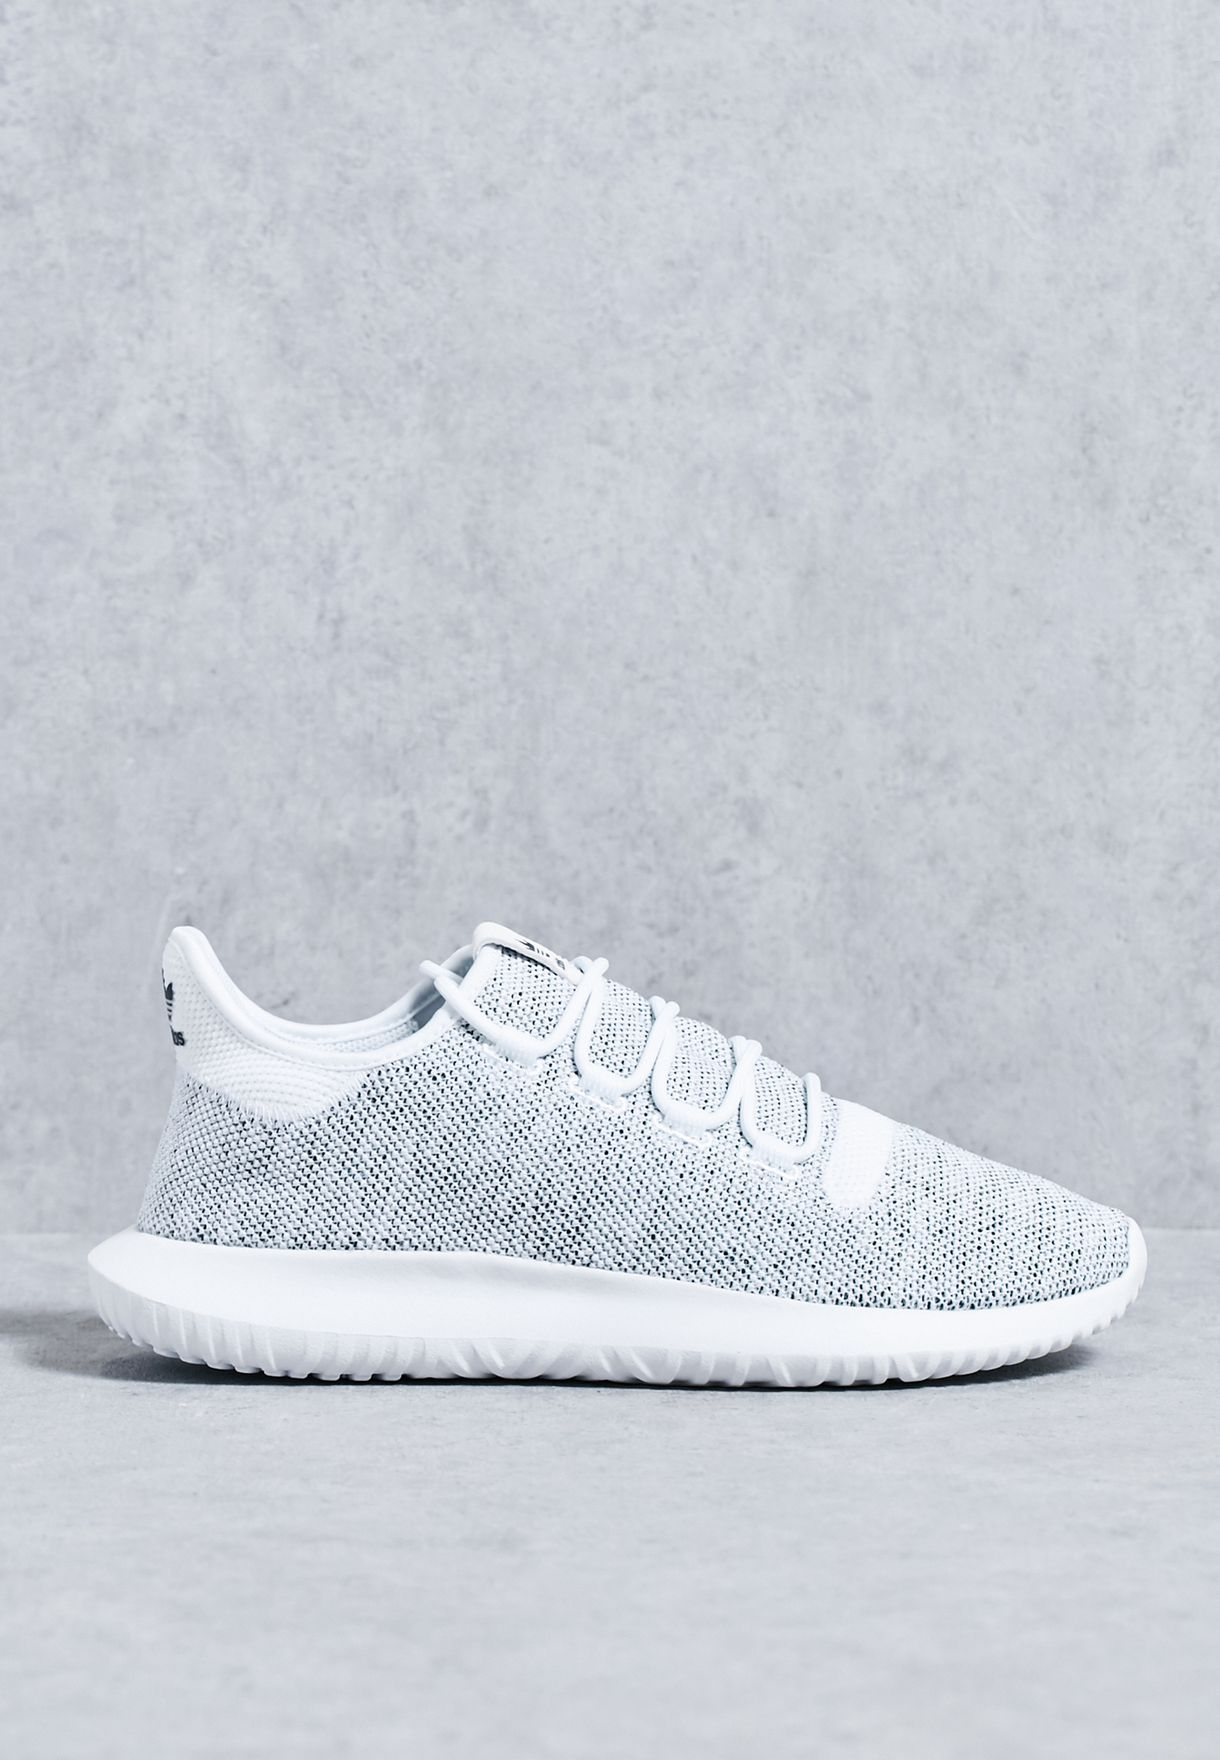 5d1770c0511 Shop adidas Originals white Tubular Shadow Knit BB8941 for Men in ...